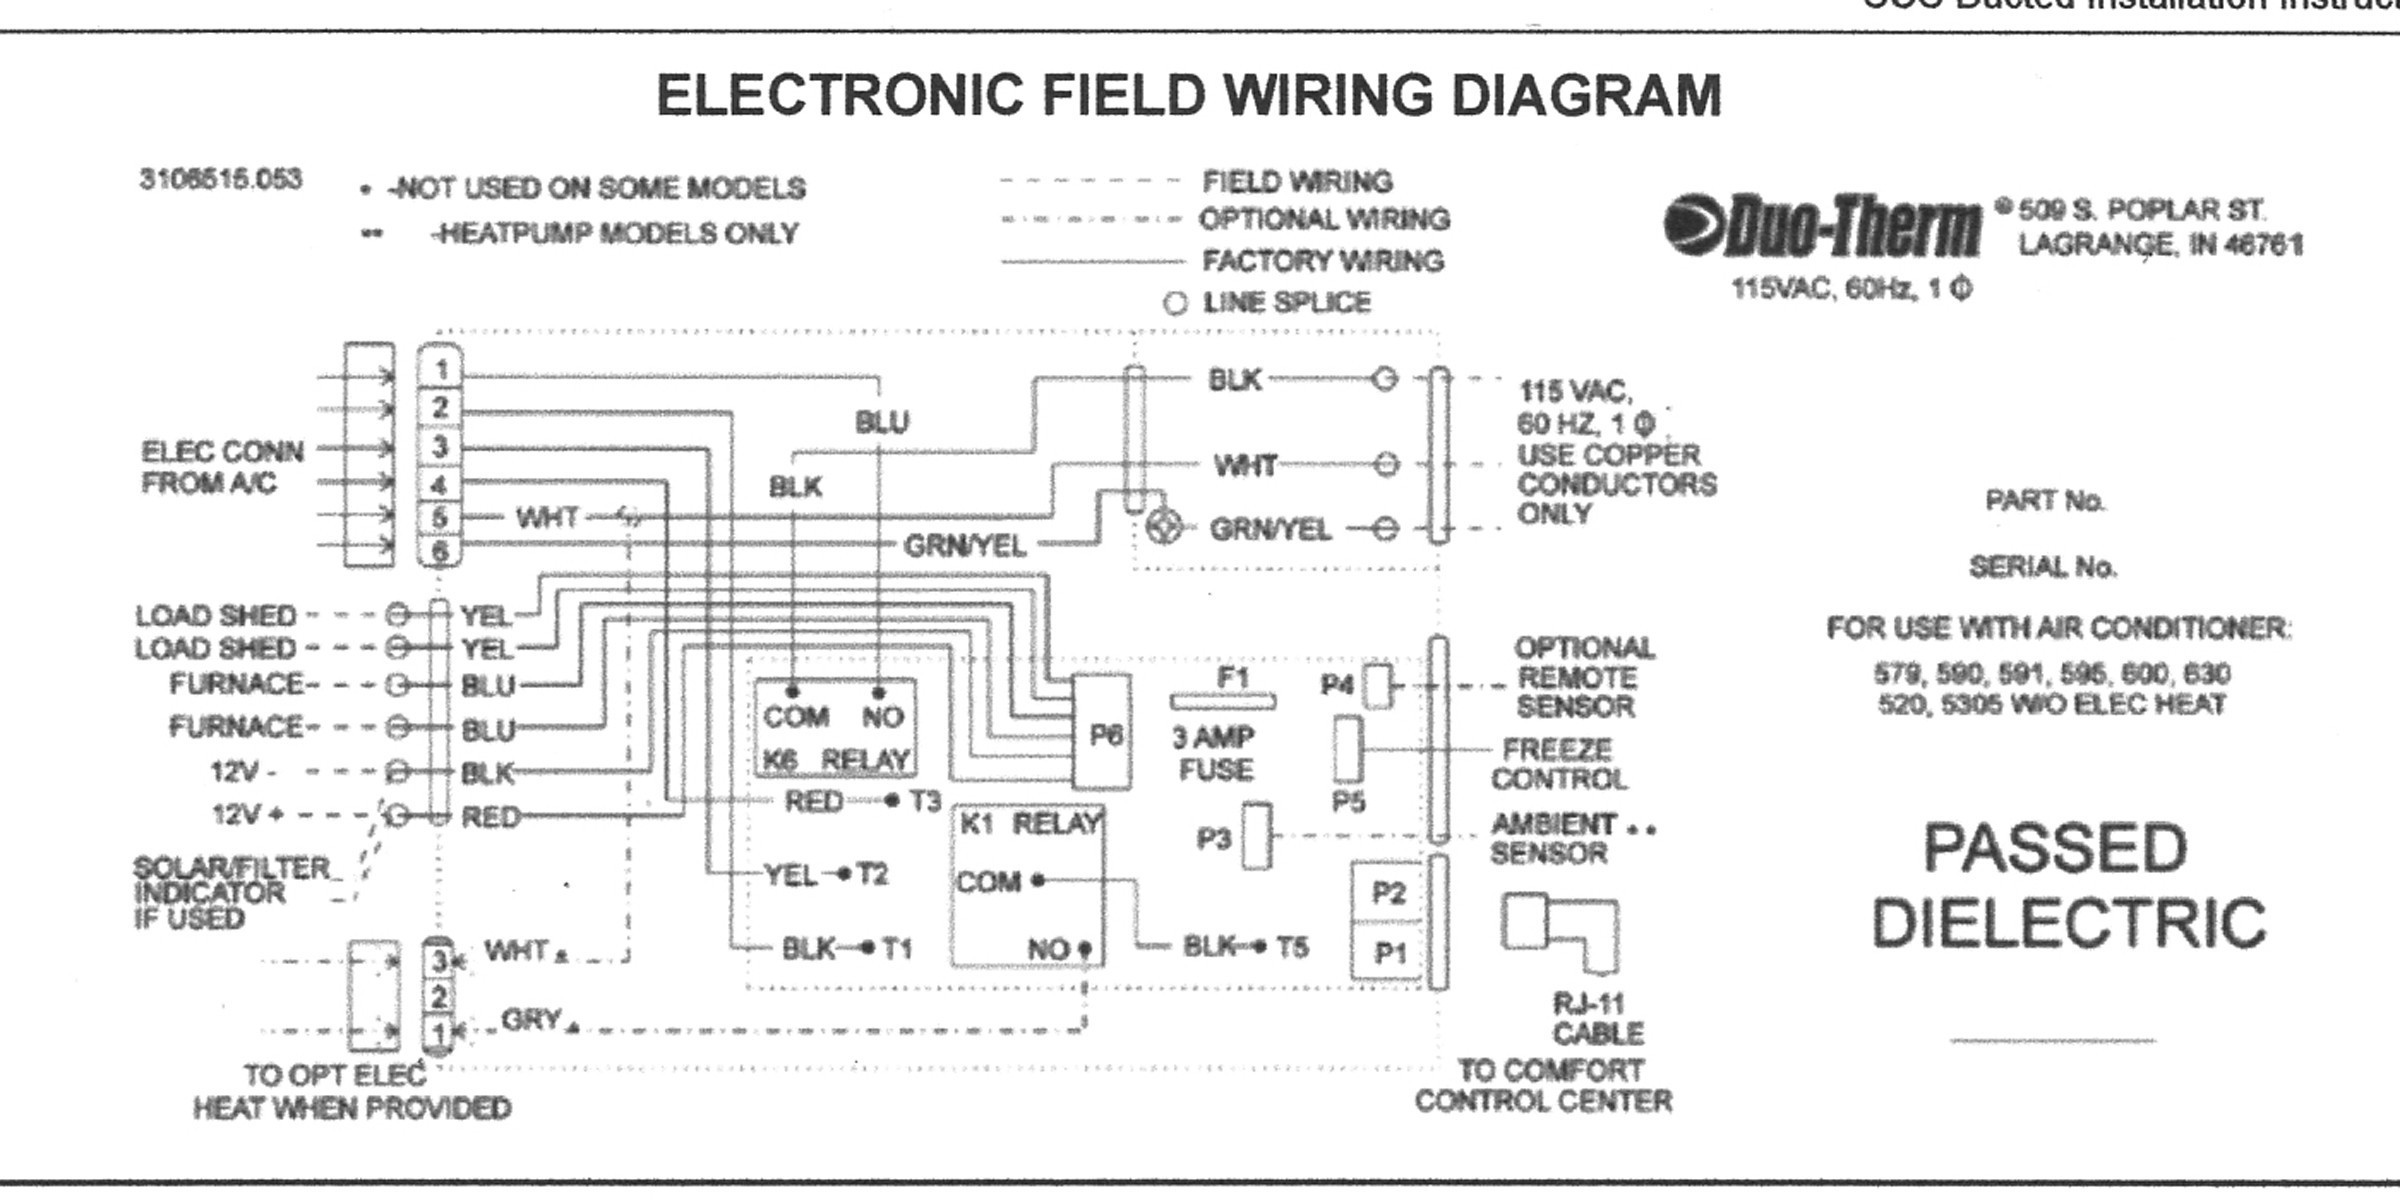 atwood furnace parts diagram wiring diagram for furnace with ac fresh atwood water heater wiring of atwood furnace parts diagram atwood furnace parts diagram wiring diagram for furnace with ac